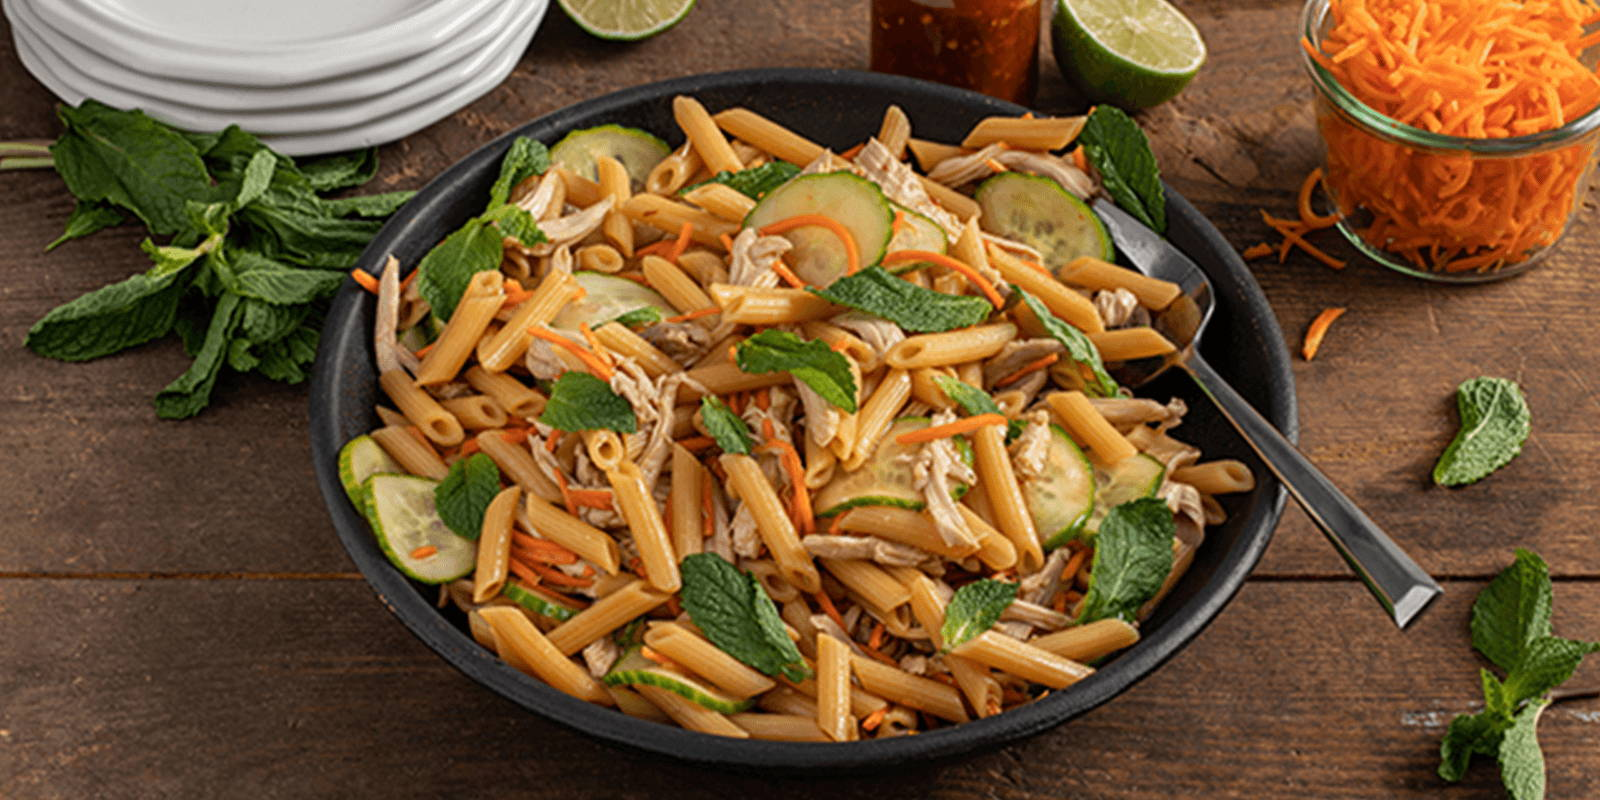 Bowl of a pasta salad with carrots and cucumbers.